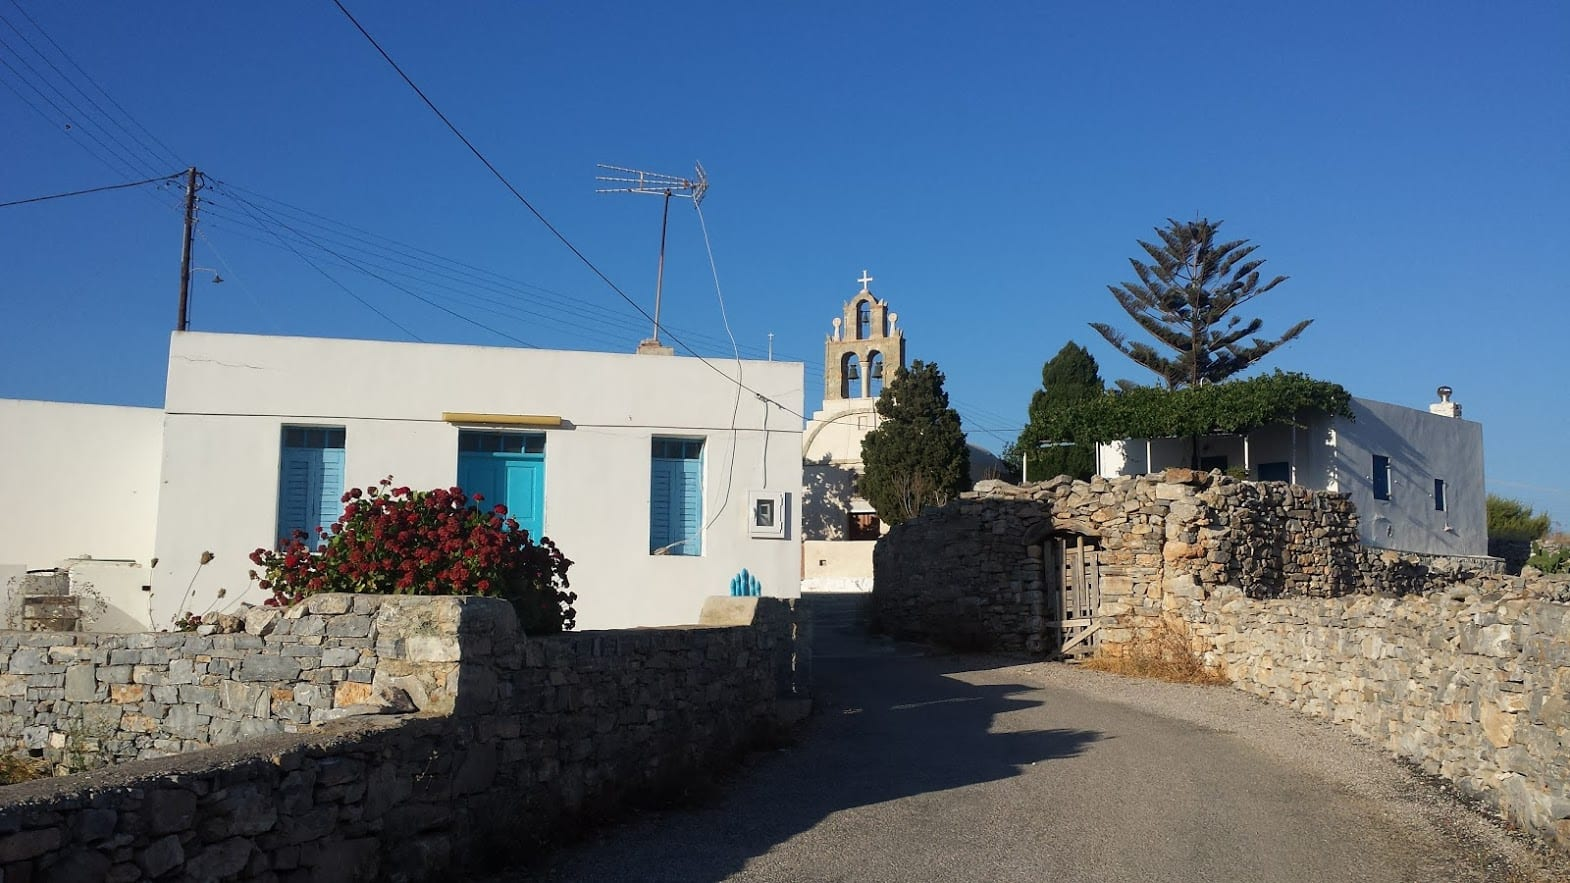 Schinoussa island in Greece has the typical blue and white buildings of the Cyclades